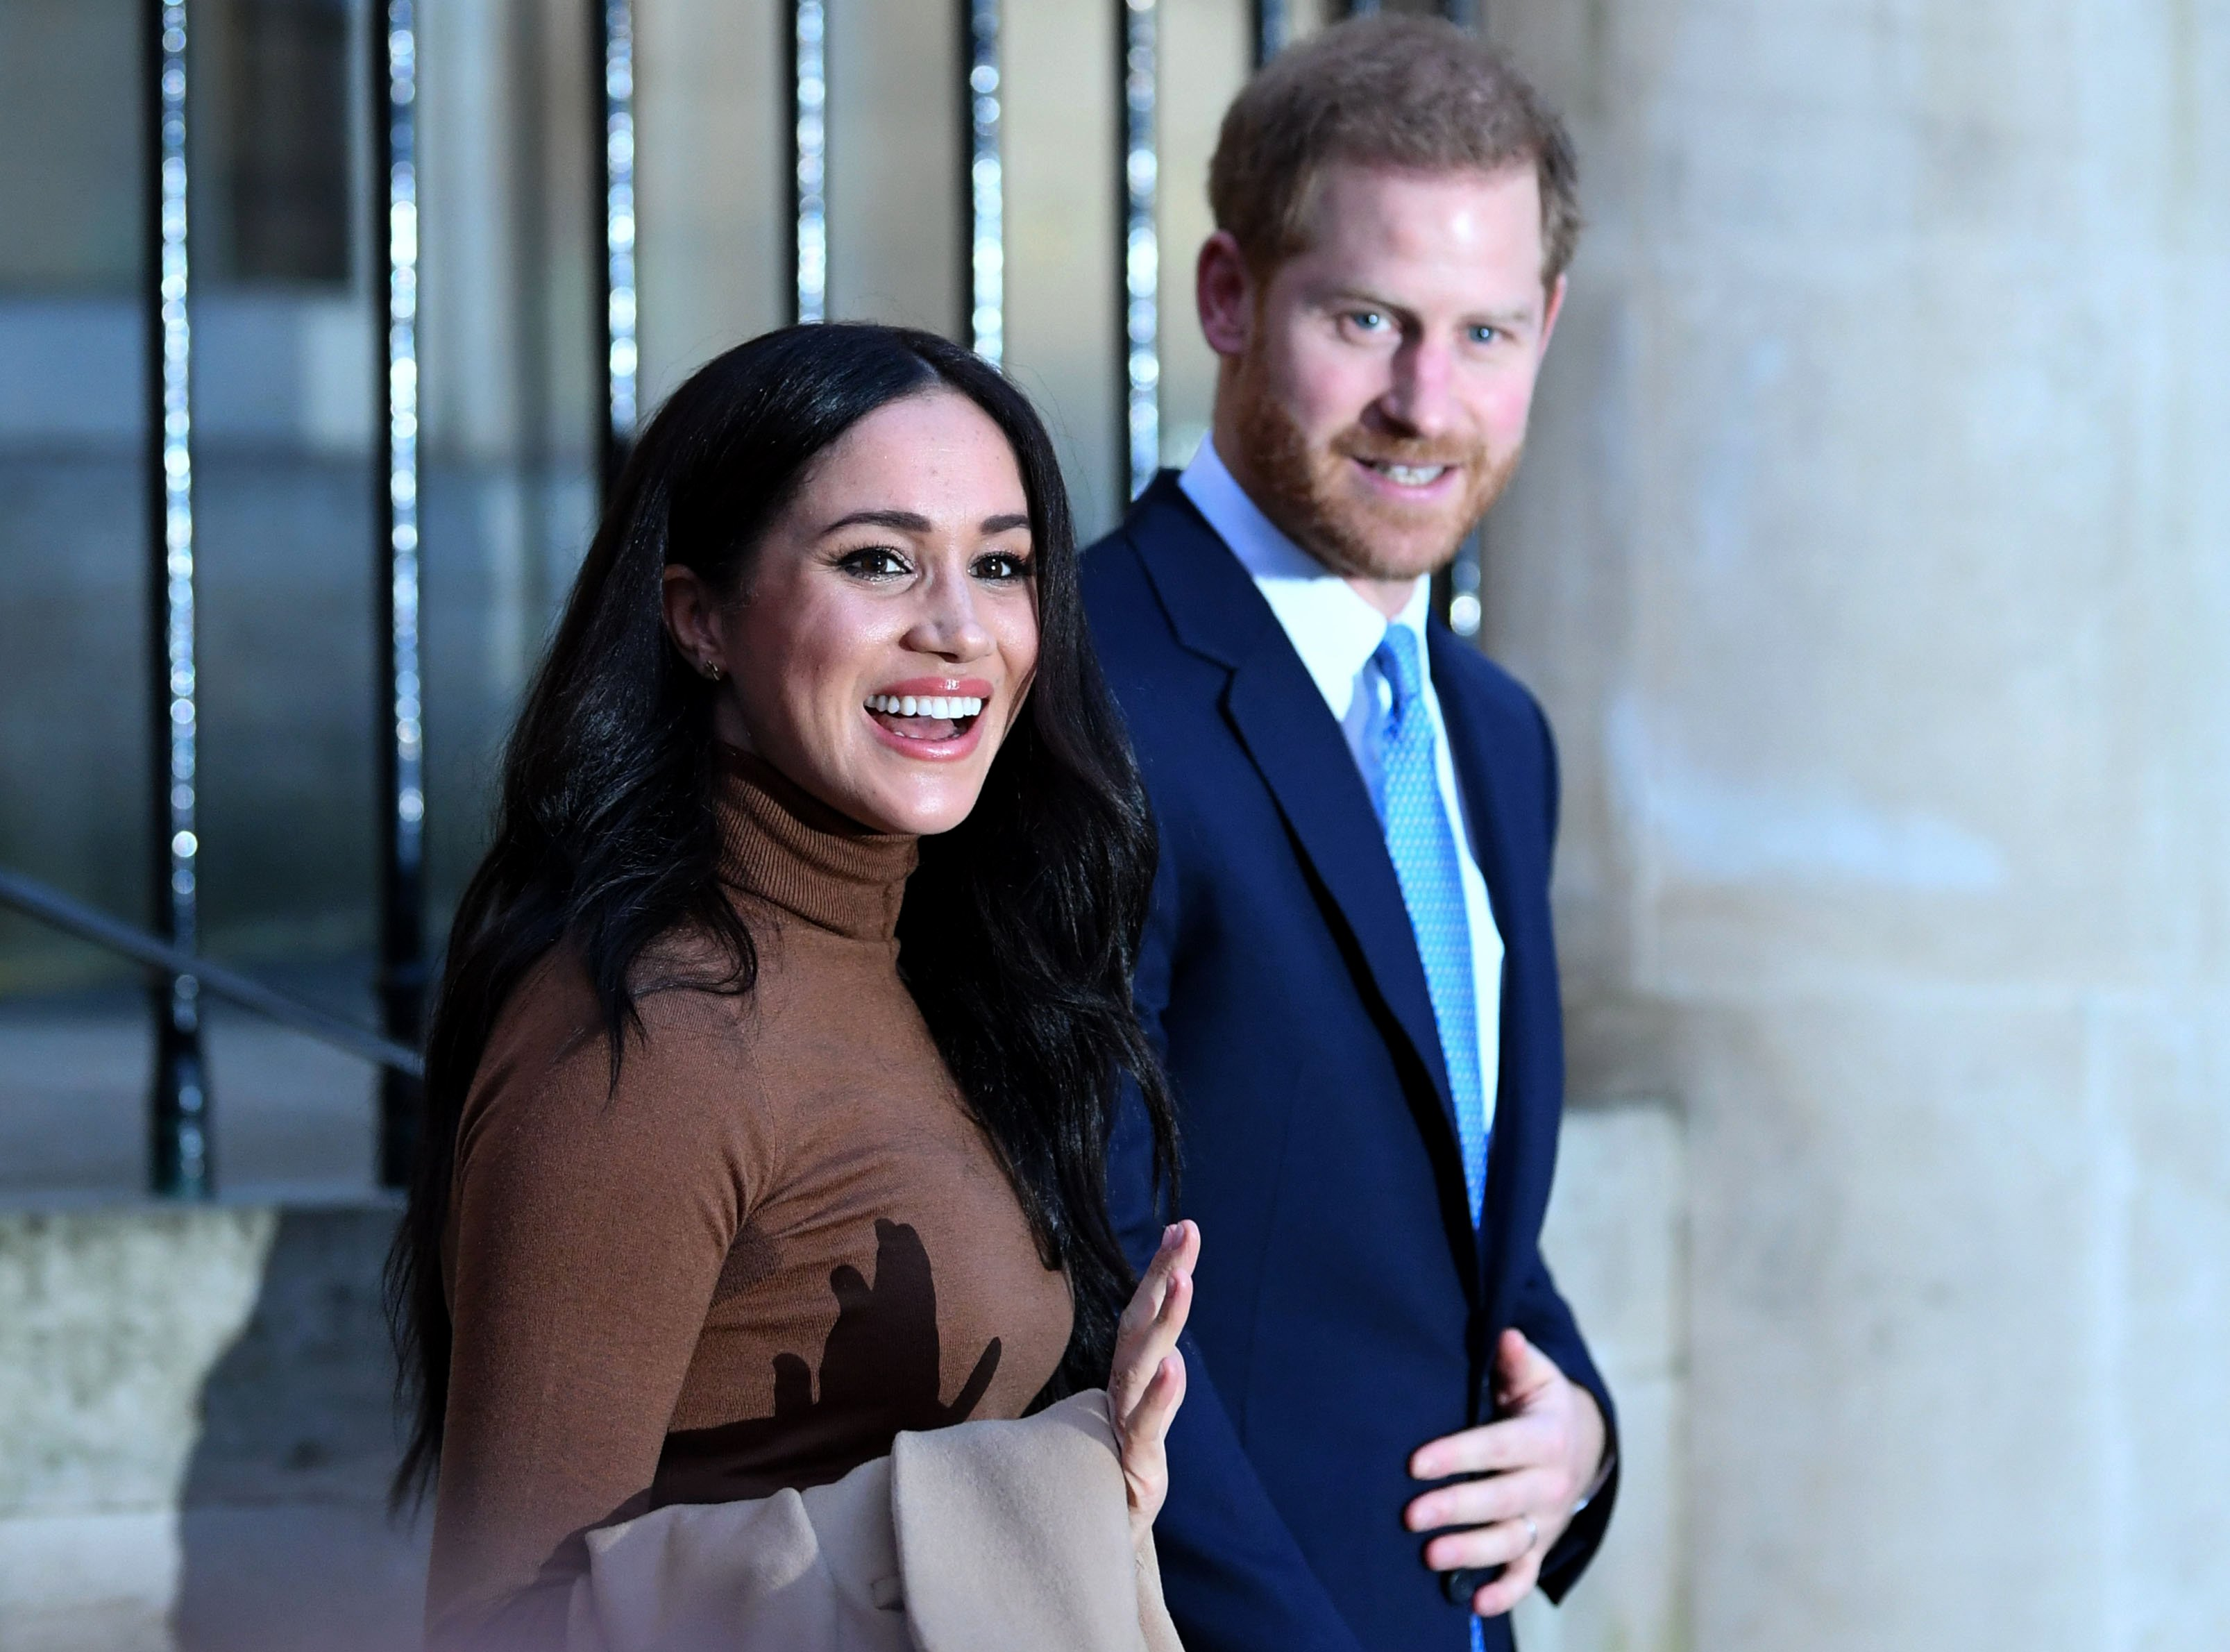 Prince Harry and Meghan Markle visit Canada House on January 7, 2020, in London, England. | Source: Getty Images.